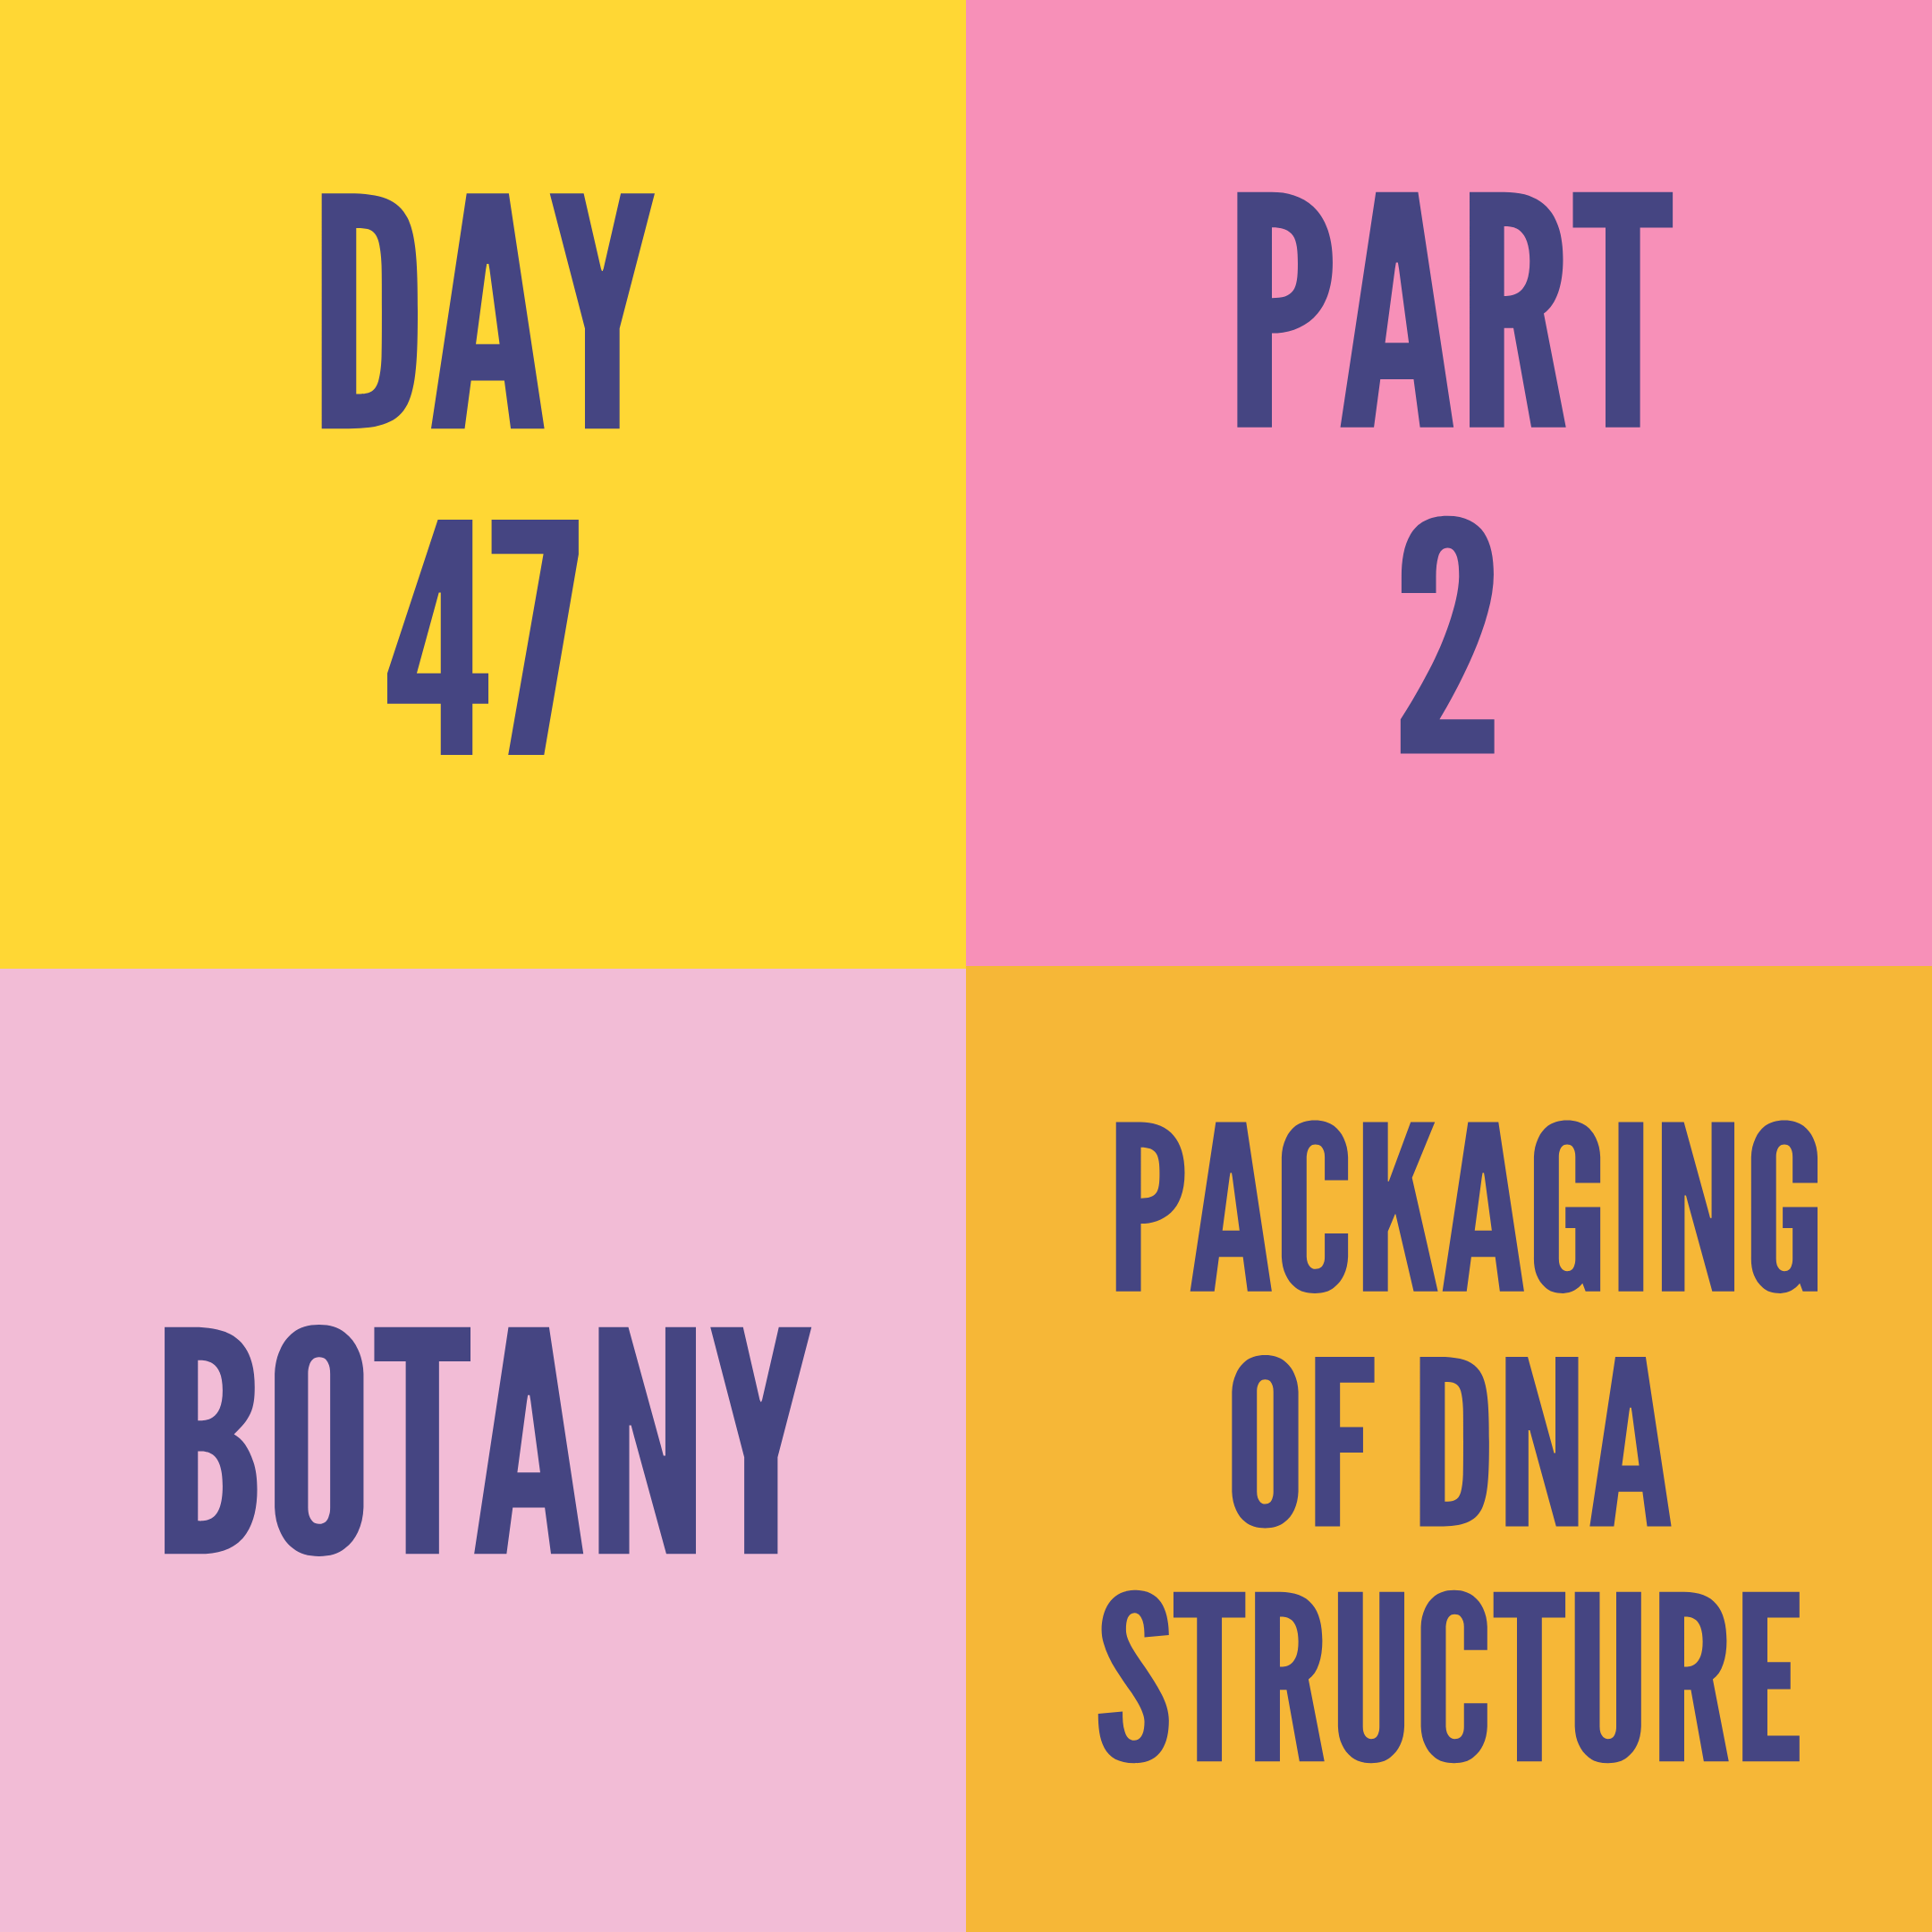 DAY-47 PART-2 PACKAGING OF DNA STRUCTURE